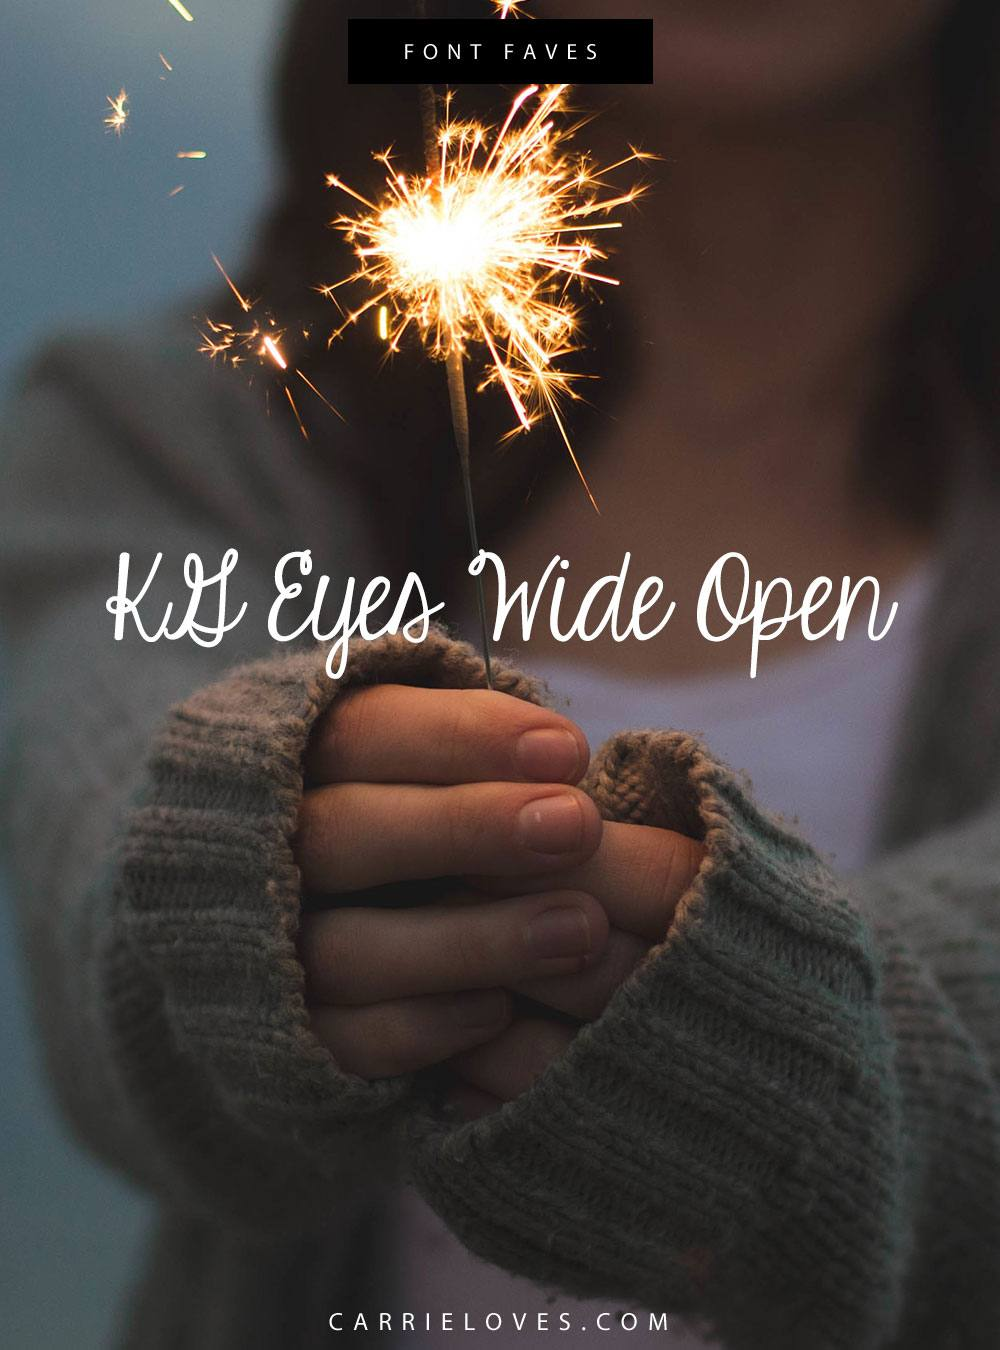 Font Faves KG Eyes Wide Open - Carrie Loves Blog